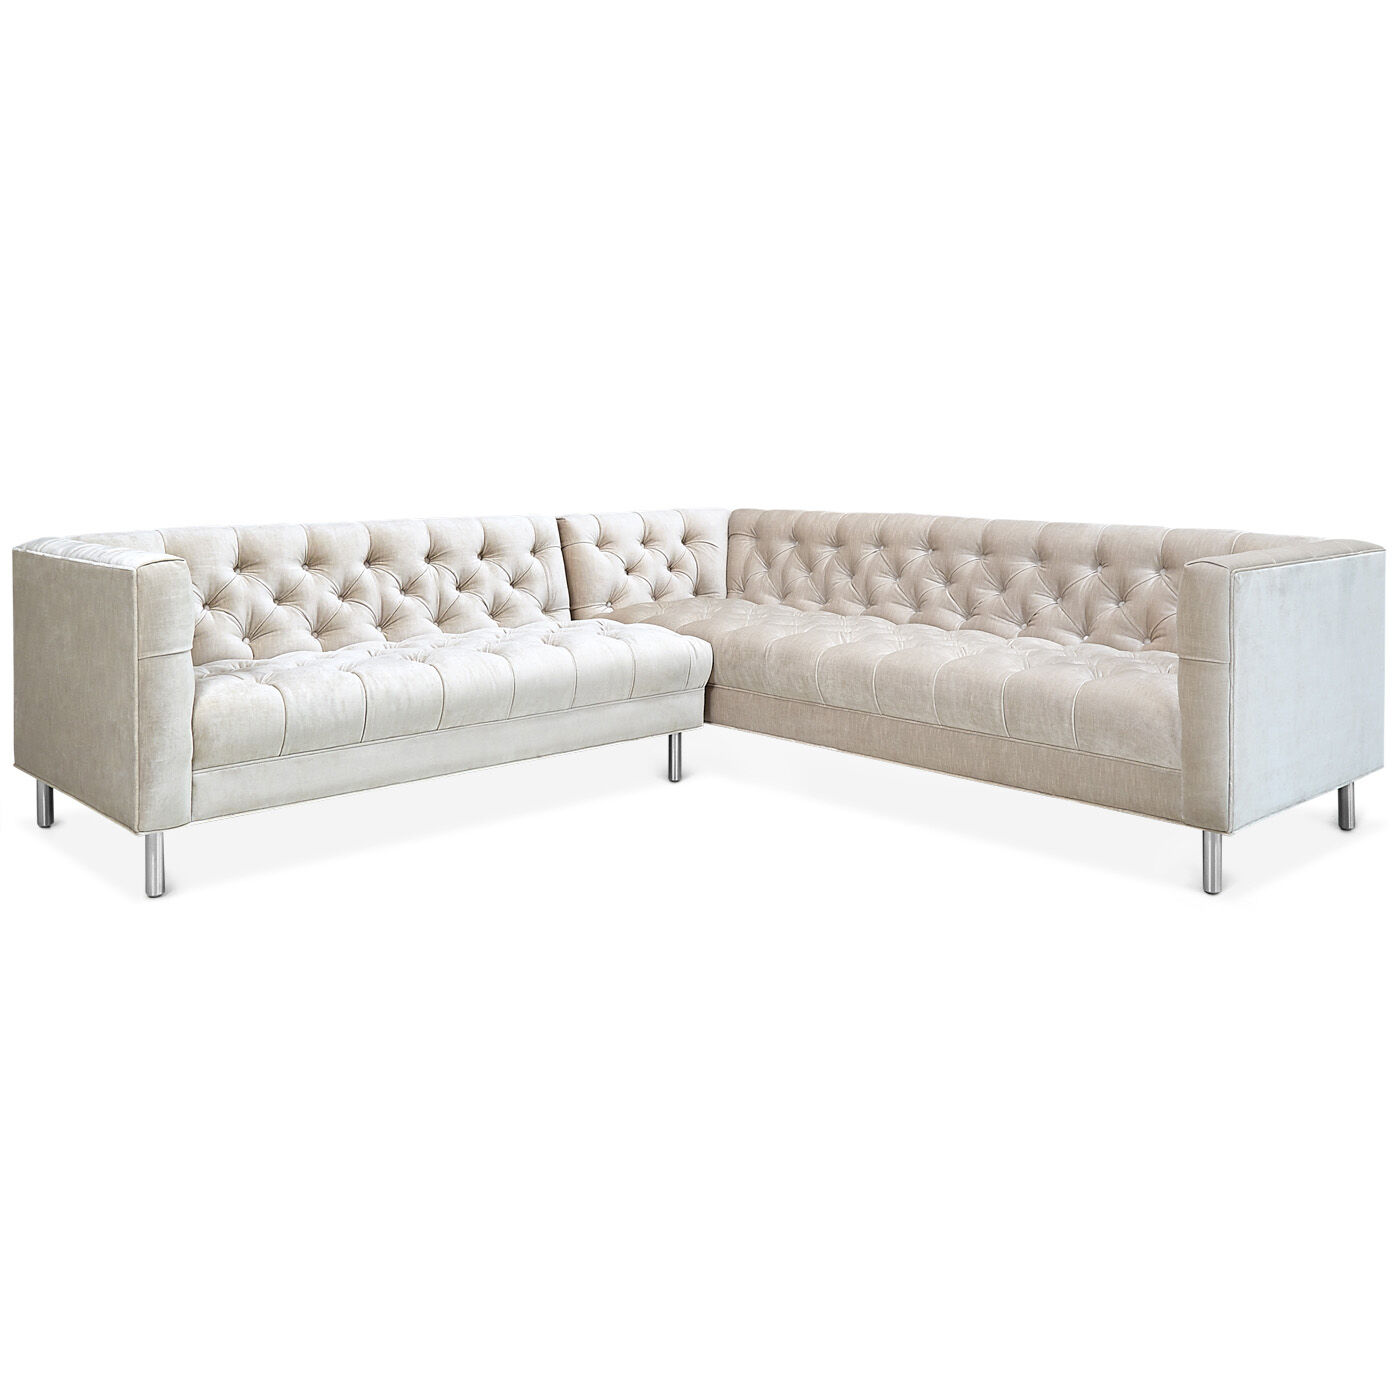 Baxter Sectional Right Arm Facing  hi-res  sc 1 st  Jonathan Adler : left arm facing sectional - Sectionals, Sofas & Couches